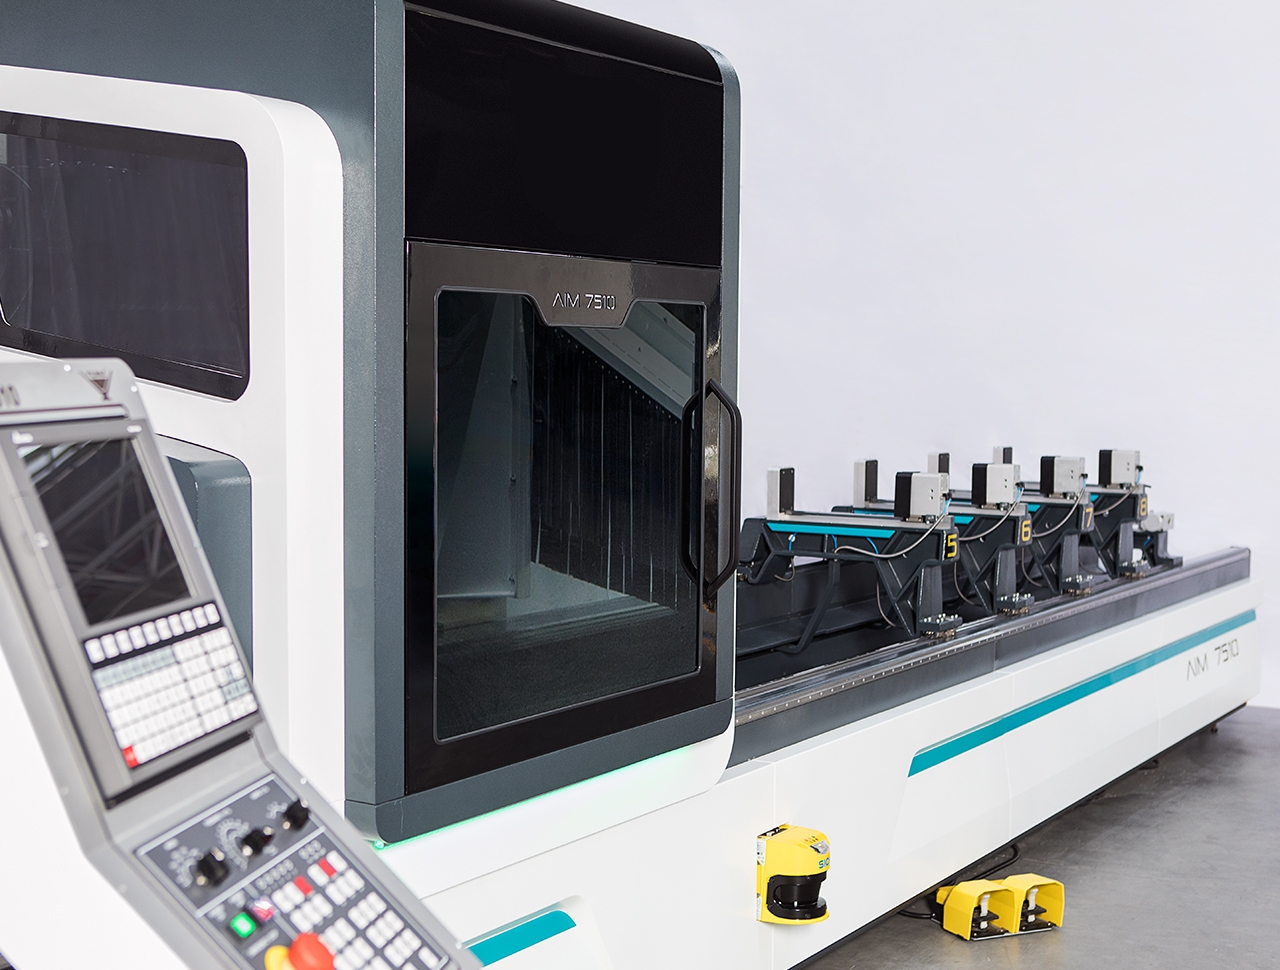 aim 7510 5 axes aluminium profile processing center cnc machine 1